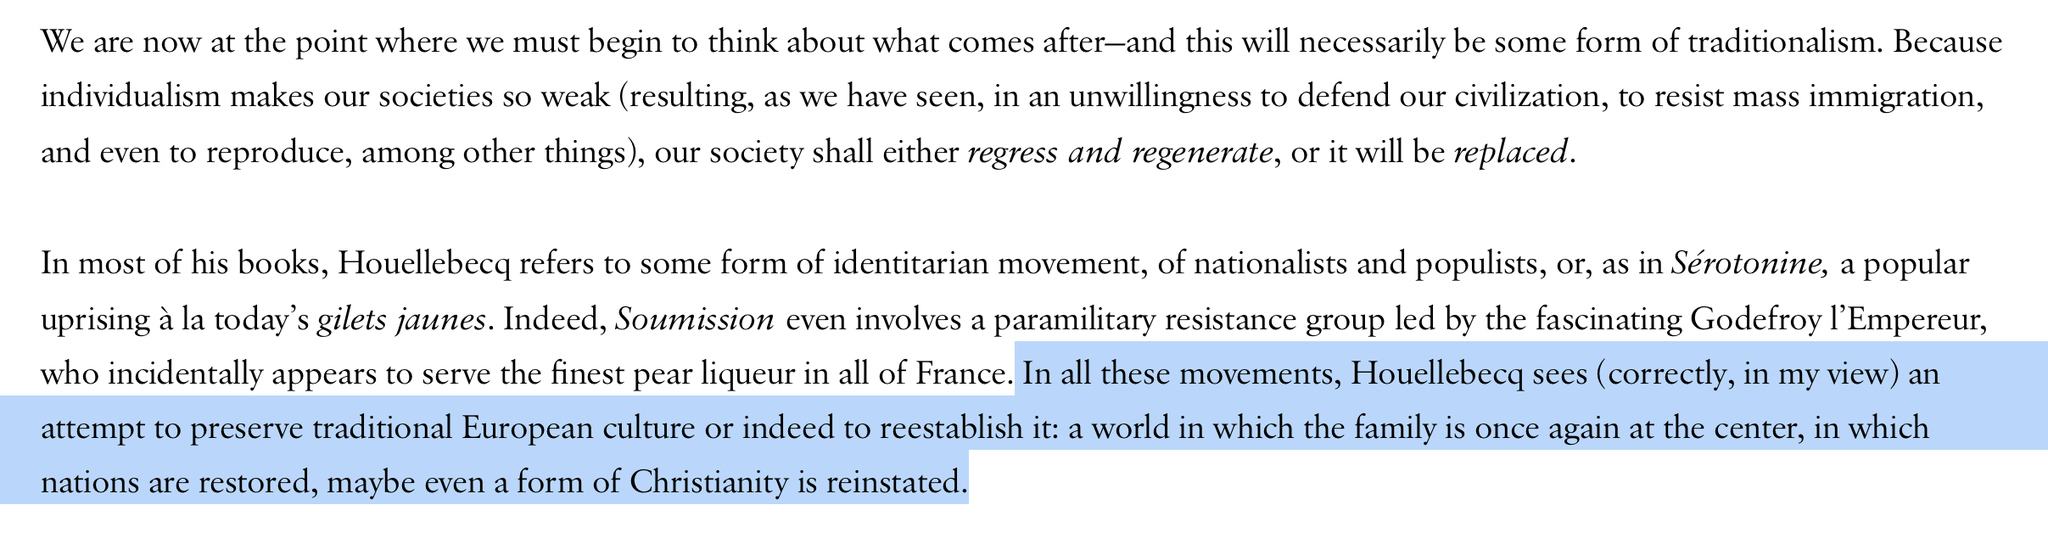 We are now at the point where we must begin to think about what comes after—and this will necessarily be some form of tra­ditionalism. Our society shall either regress and regenerate, or it will be replaced. Houellebecq sees (correctly, in my view) an attempt to preserve traditional European culture or indeed to reestablish it: a world in which the family is once again at the center, in which nations are restored